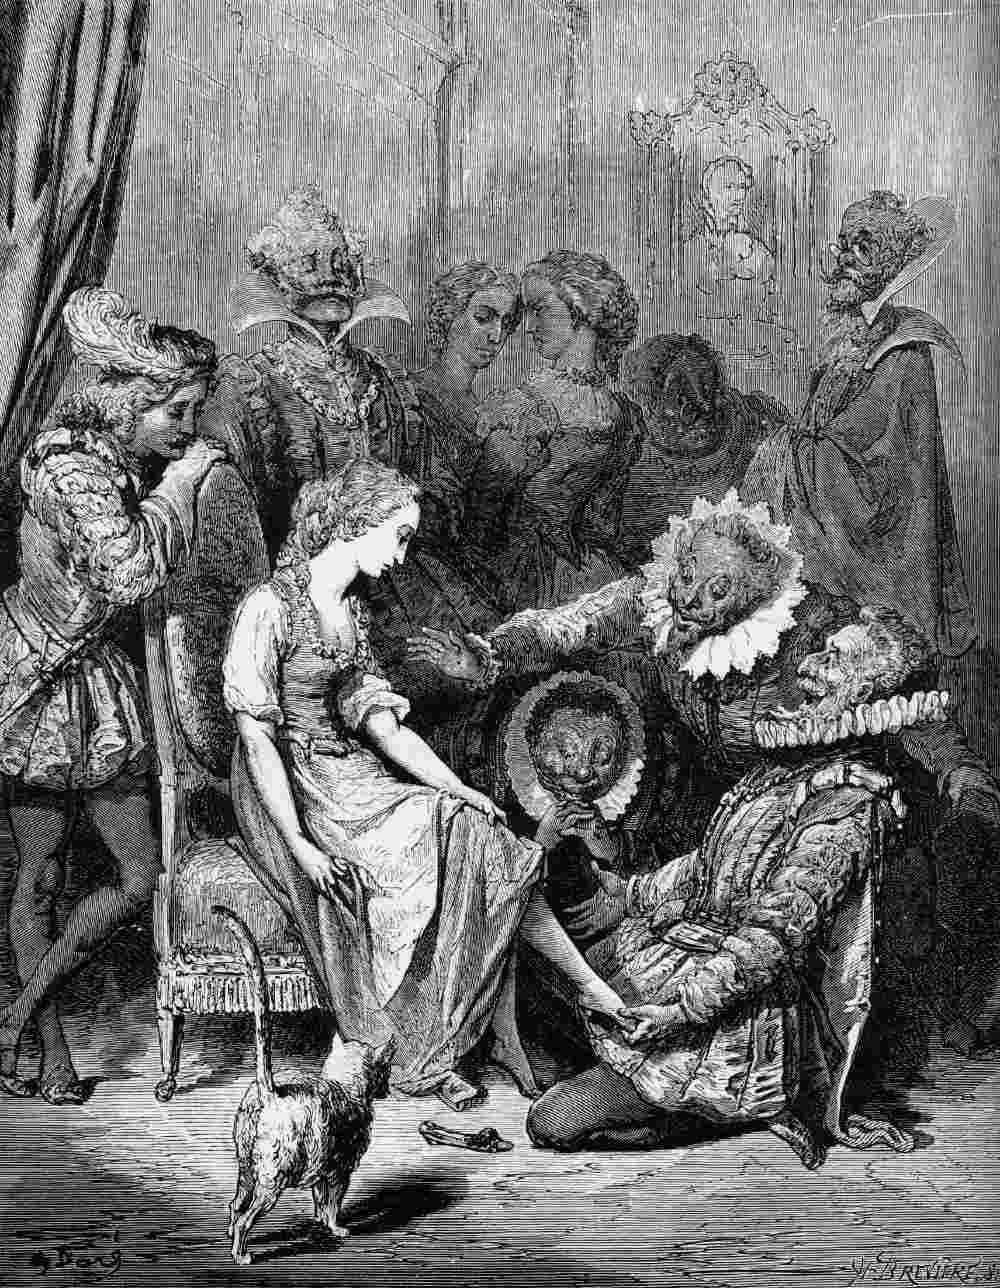 essay on fairy tales Free essay: over centuries, fairy tales were passed down by word of mouth to portray a story with a hidden meaning as these fairy tales were passed on they.